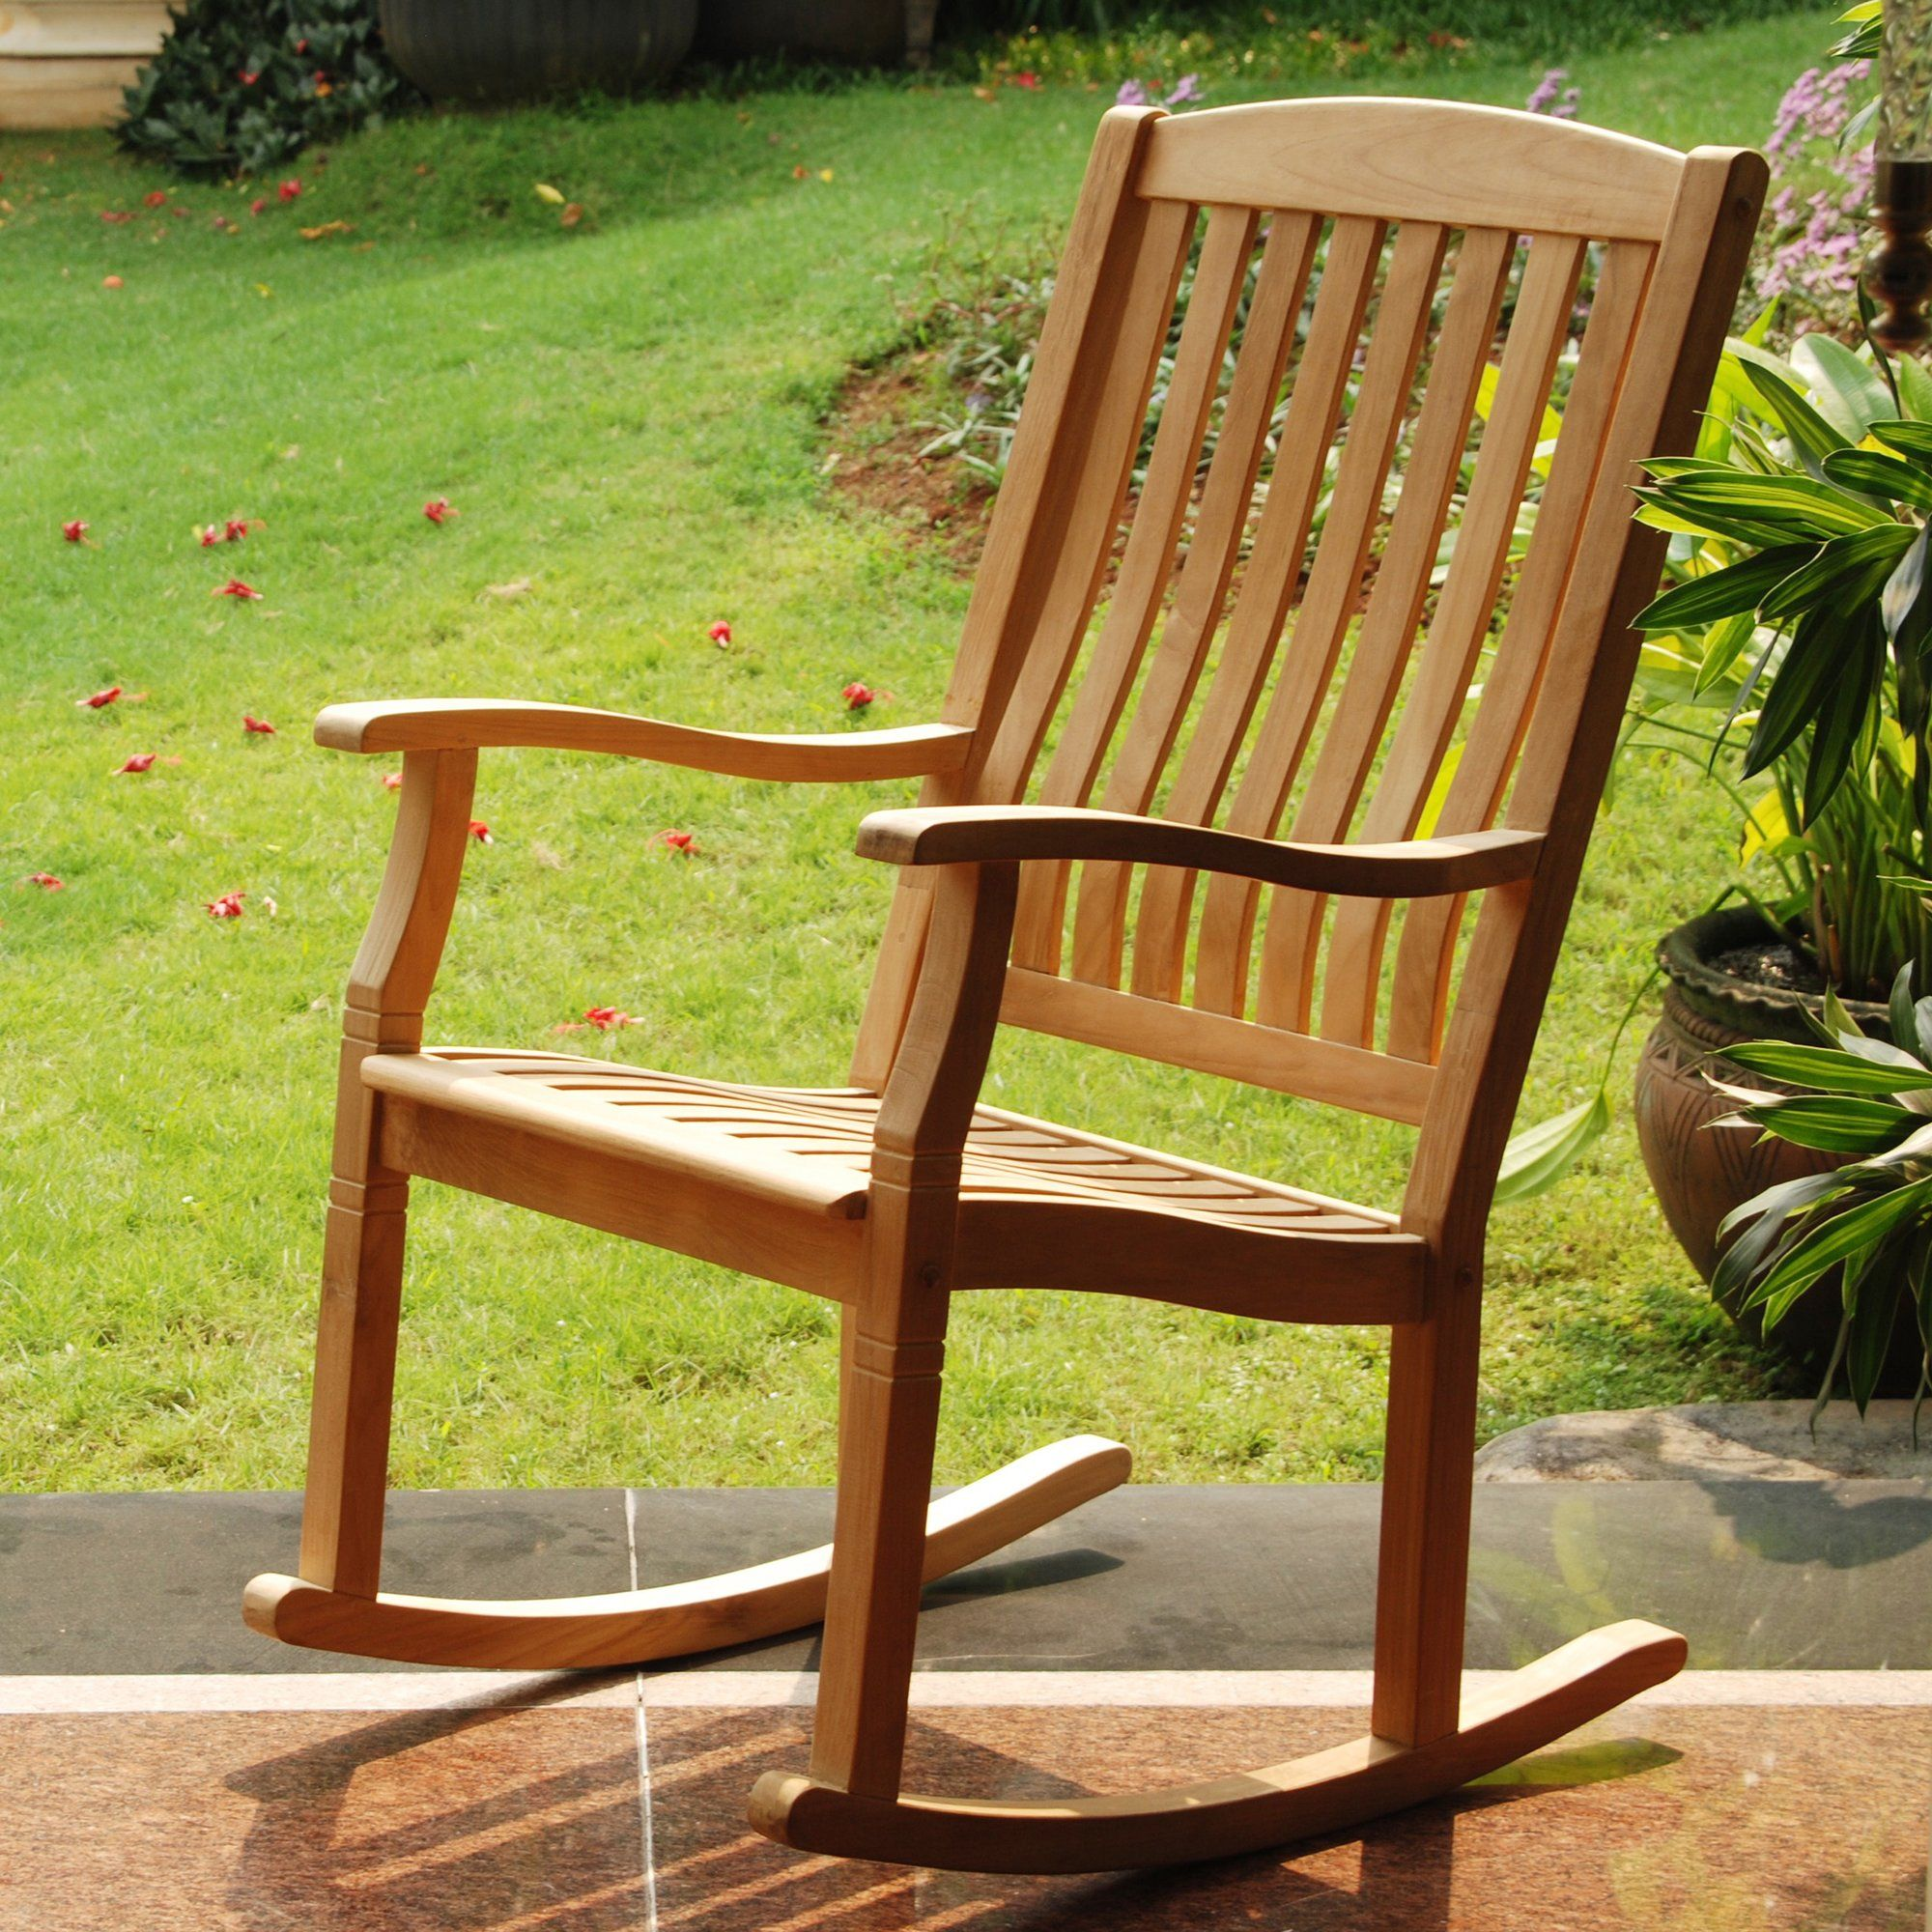 Seymour porch rocking chair home porn outdoor spaces